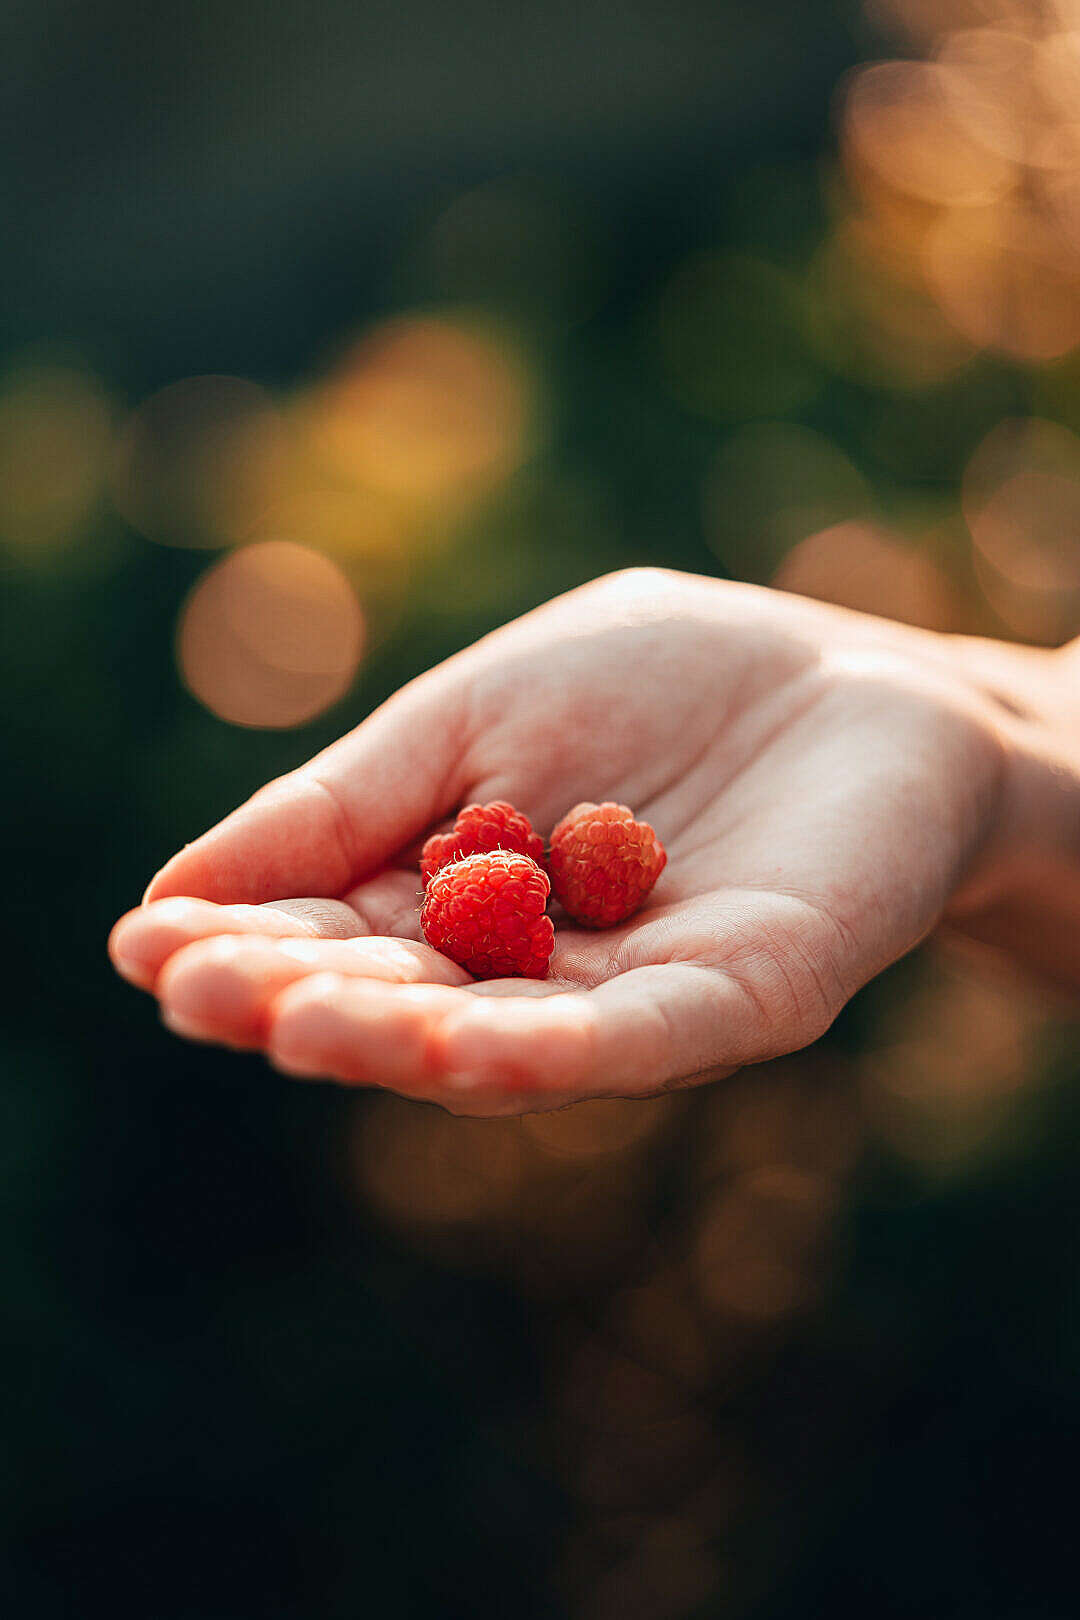 Download First Raspberries in Woman Hand FREE Stock Photo